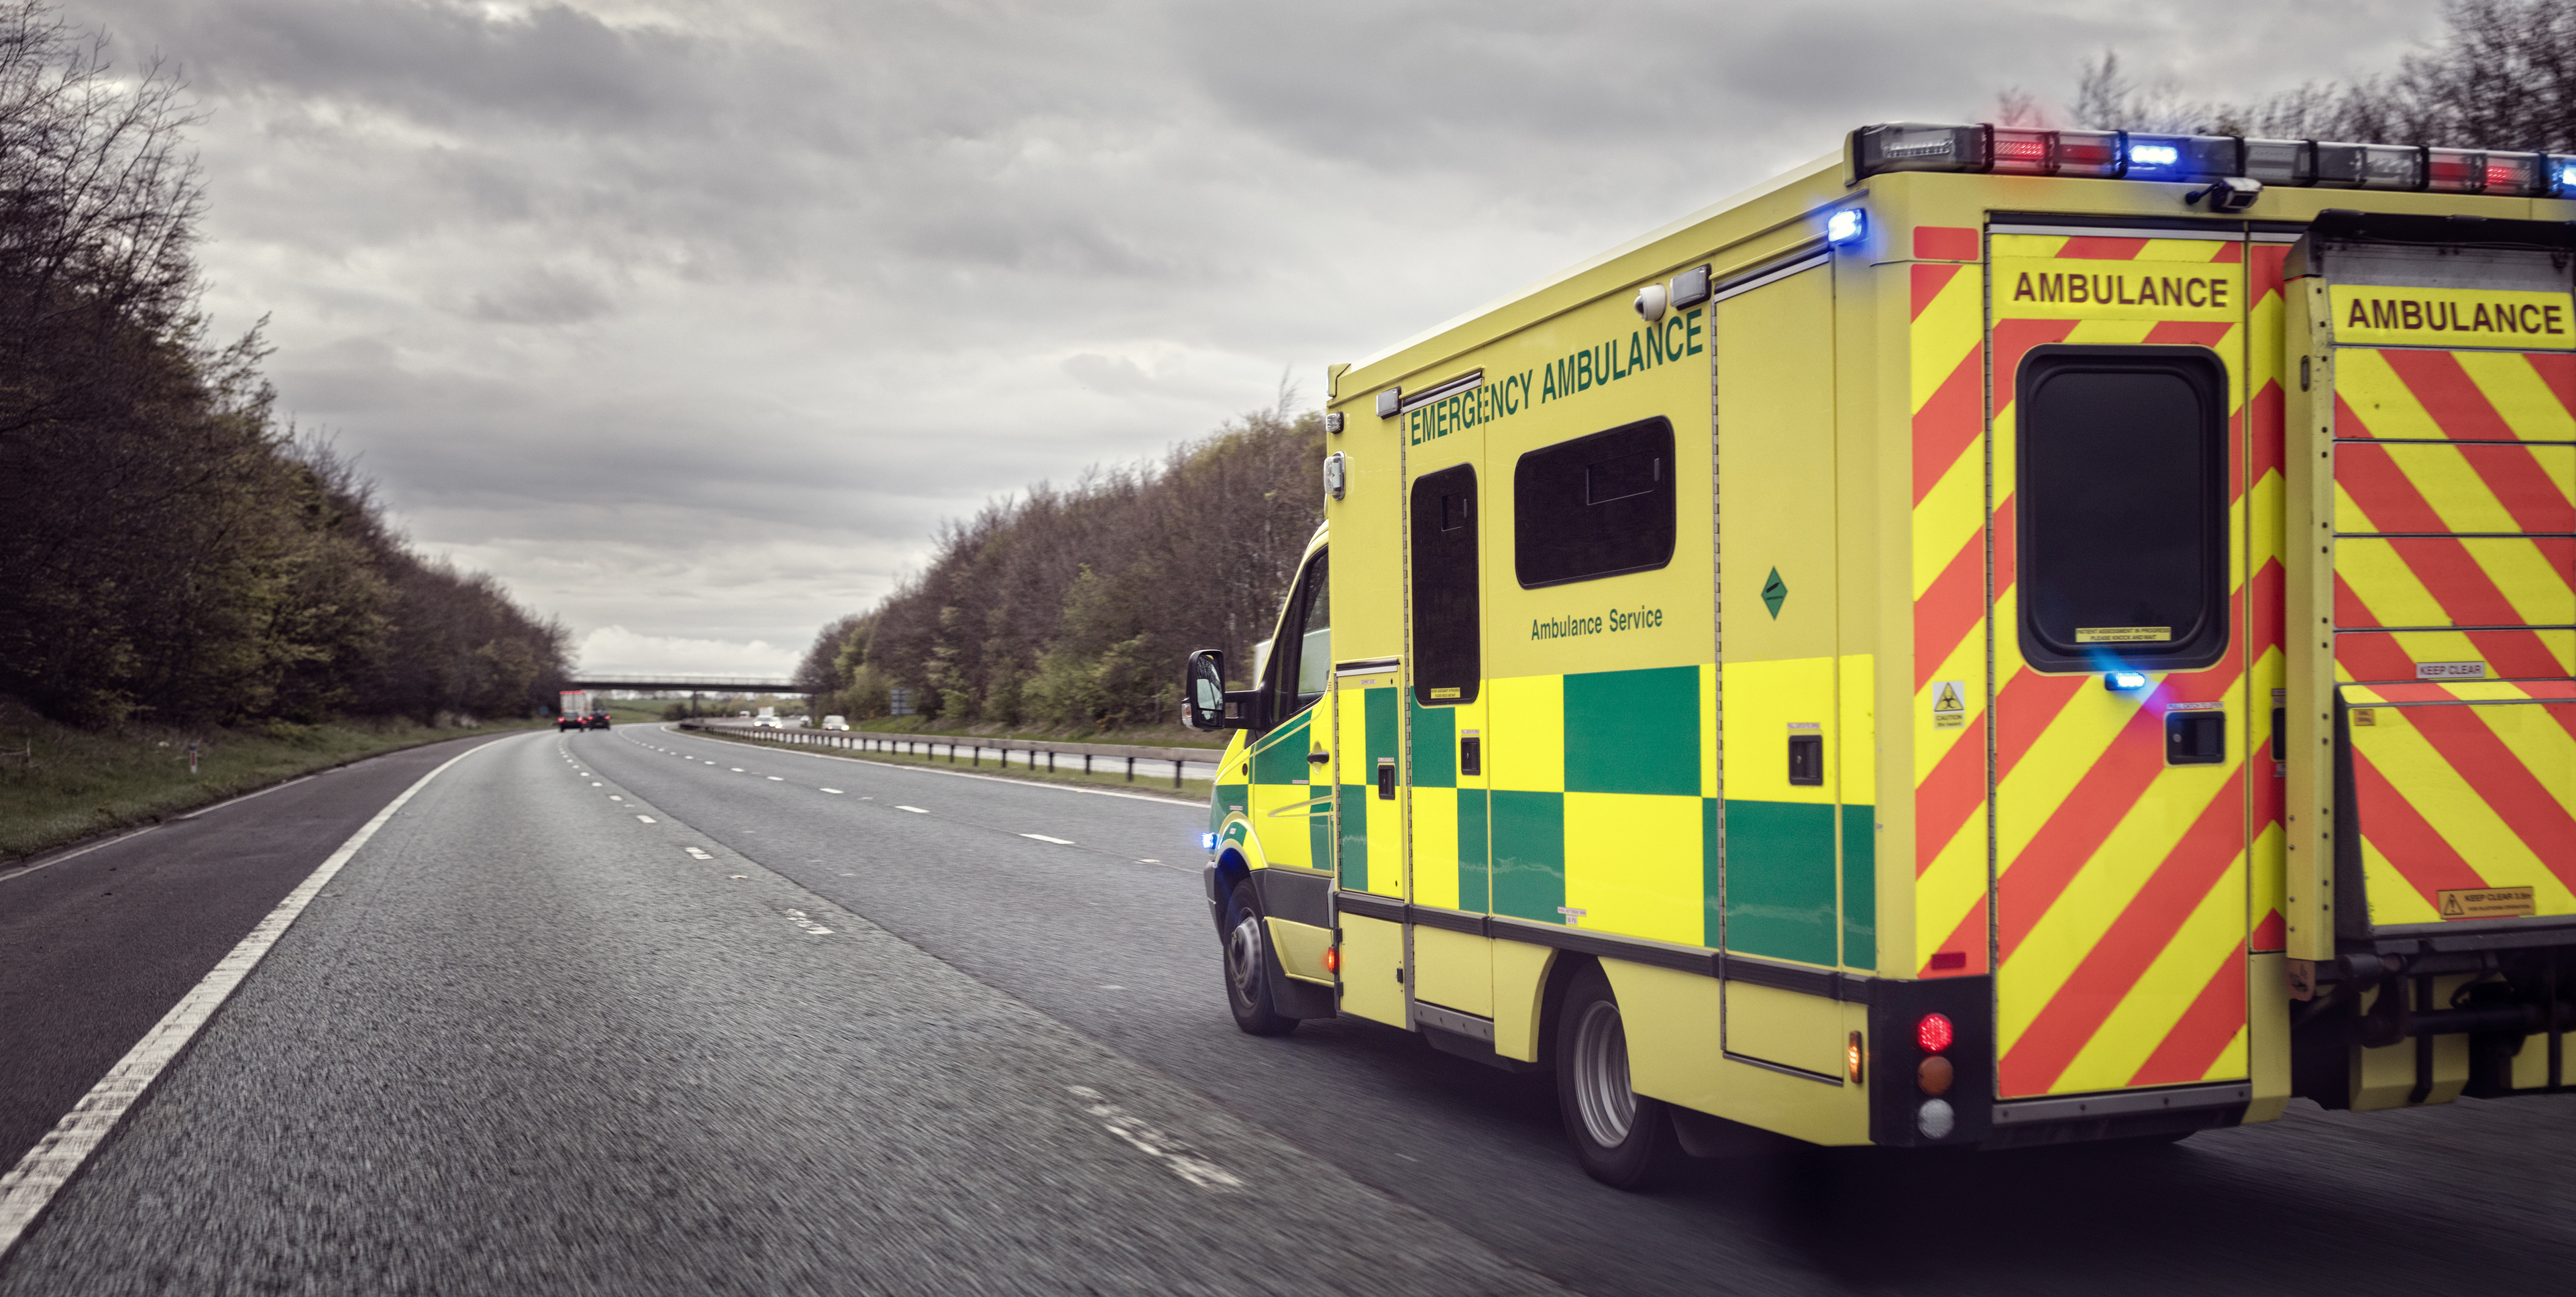 Ambulance crews were called to 10,895 incidents in 2016/17 where the primary health issue was psychiatric (iStock)